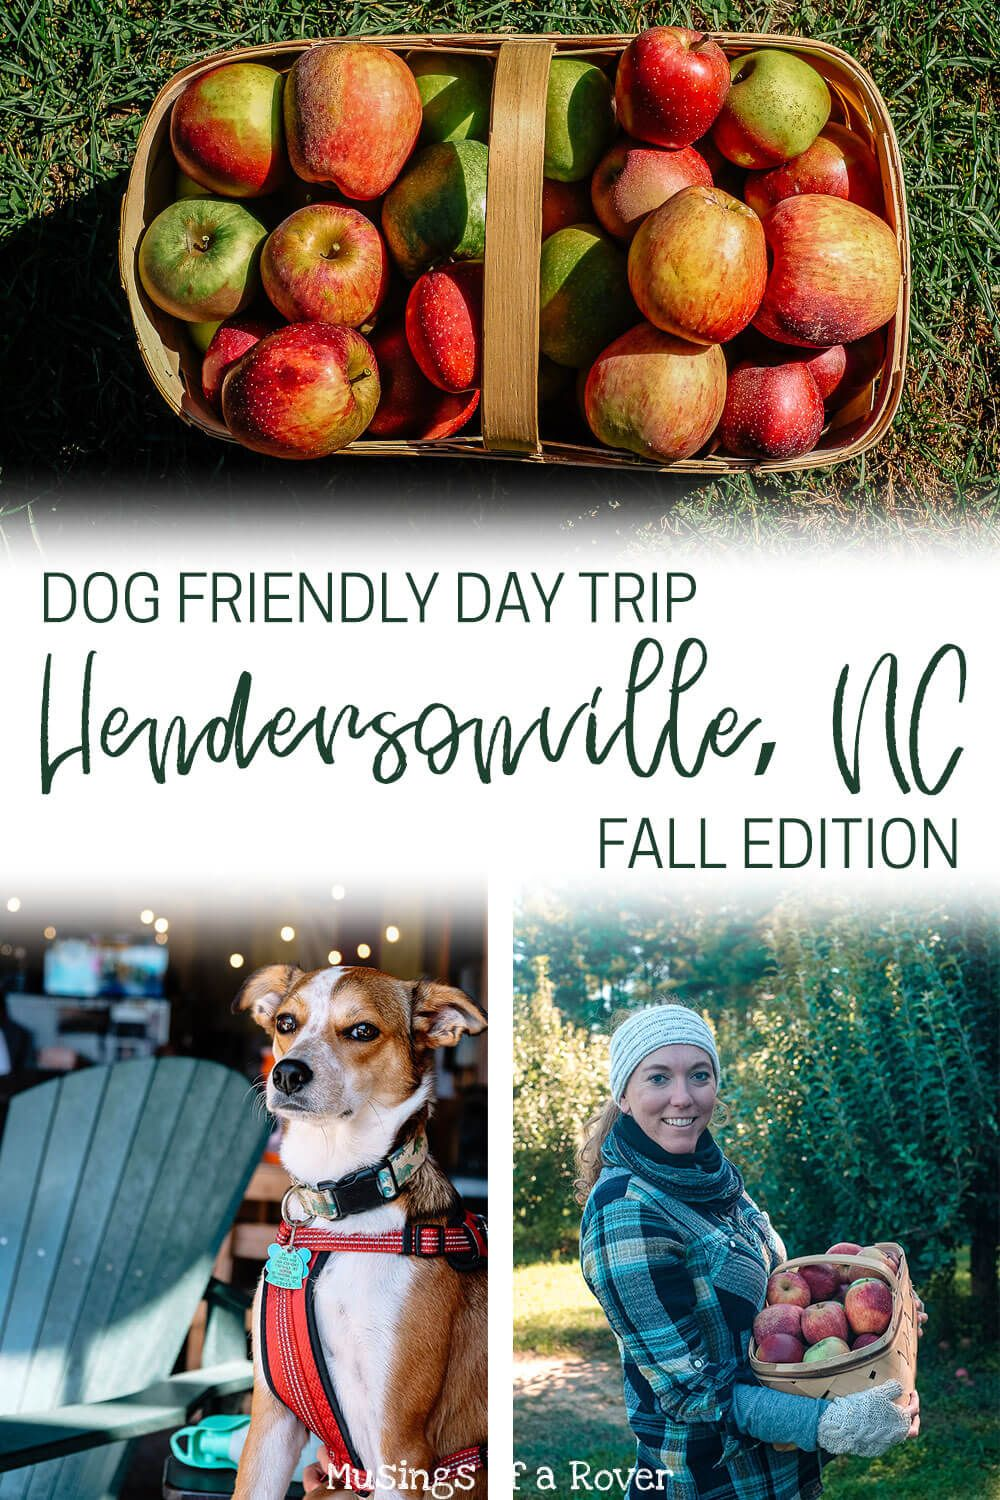 Hendersonville, NC has all of your favorite fall activities. Apple picking, orchards, corn mazes, pumpkin patches, apple doughnuts, breweries, ciders, wineries, and more. Here's how to spend the perfect fall afternoon in Hendersonville.